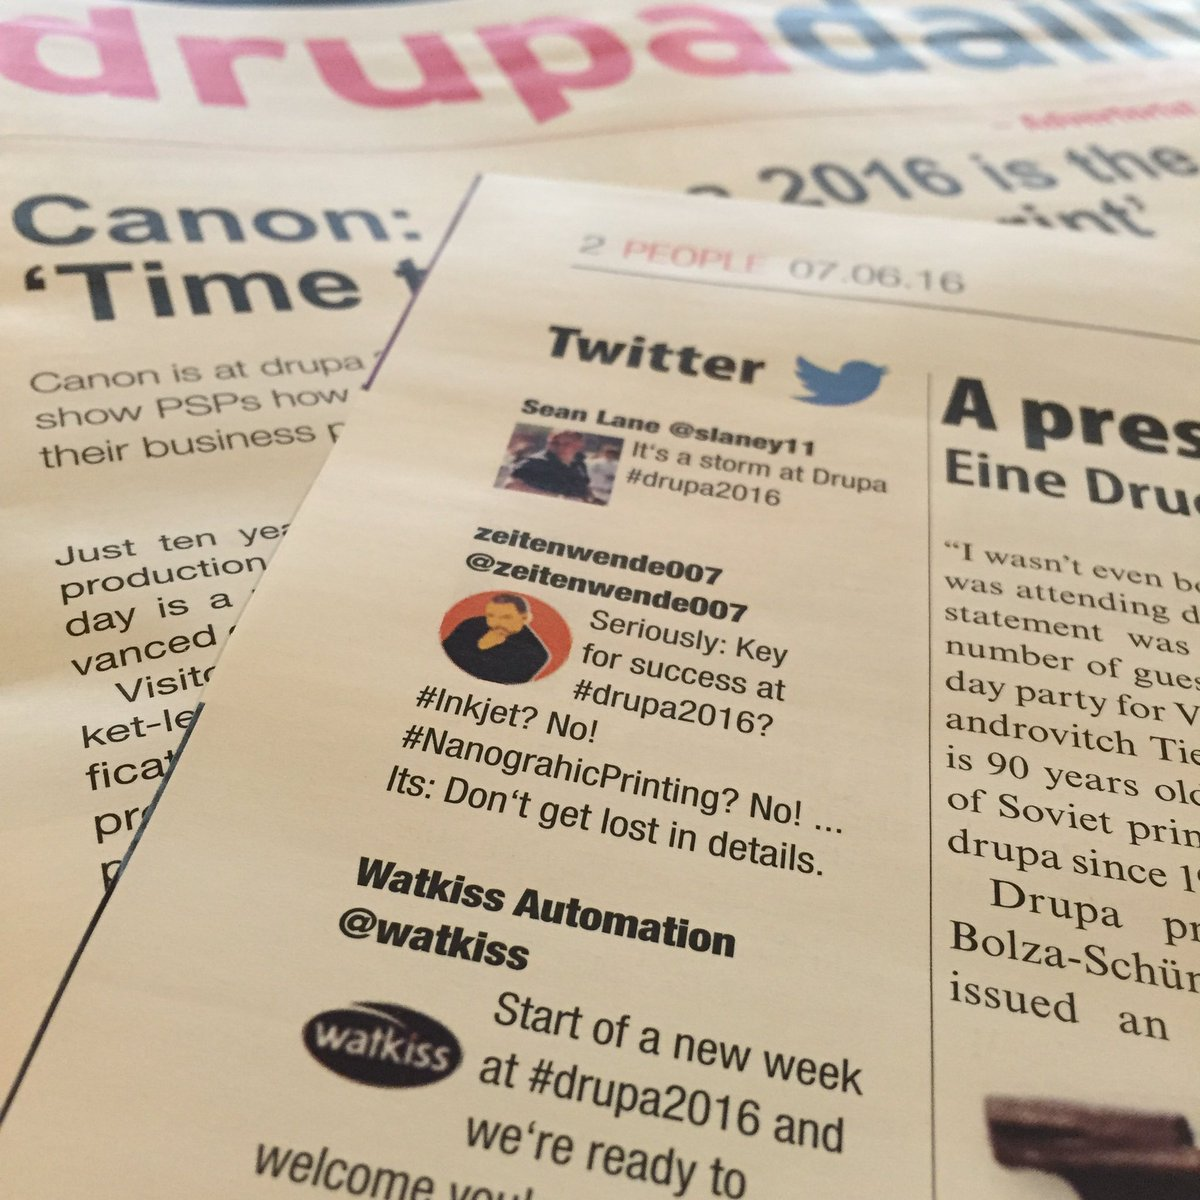 Learning: Mission impossible! Even if you are on #Twitter you can't escape the #print @drupa #drupa2016 Haha! https://t.co/Au0e6siruu